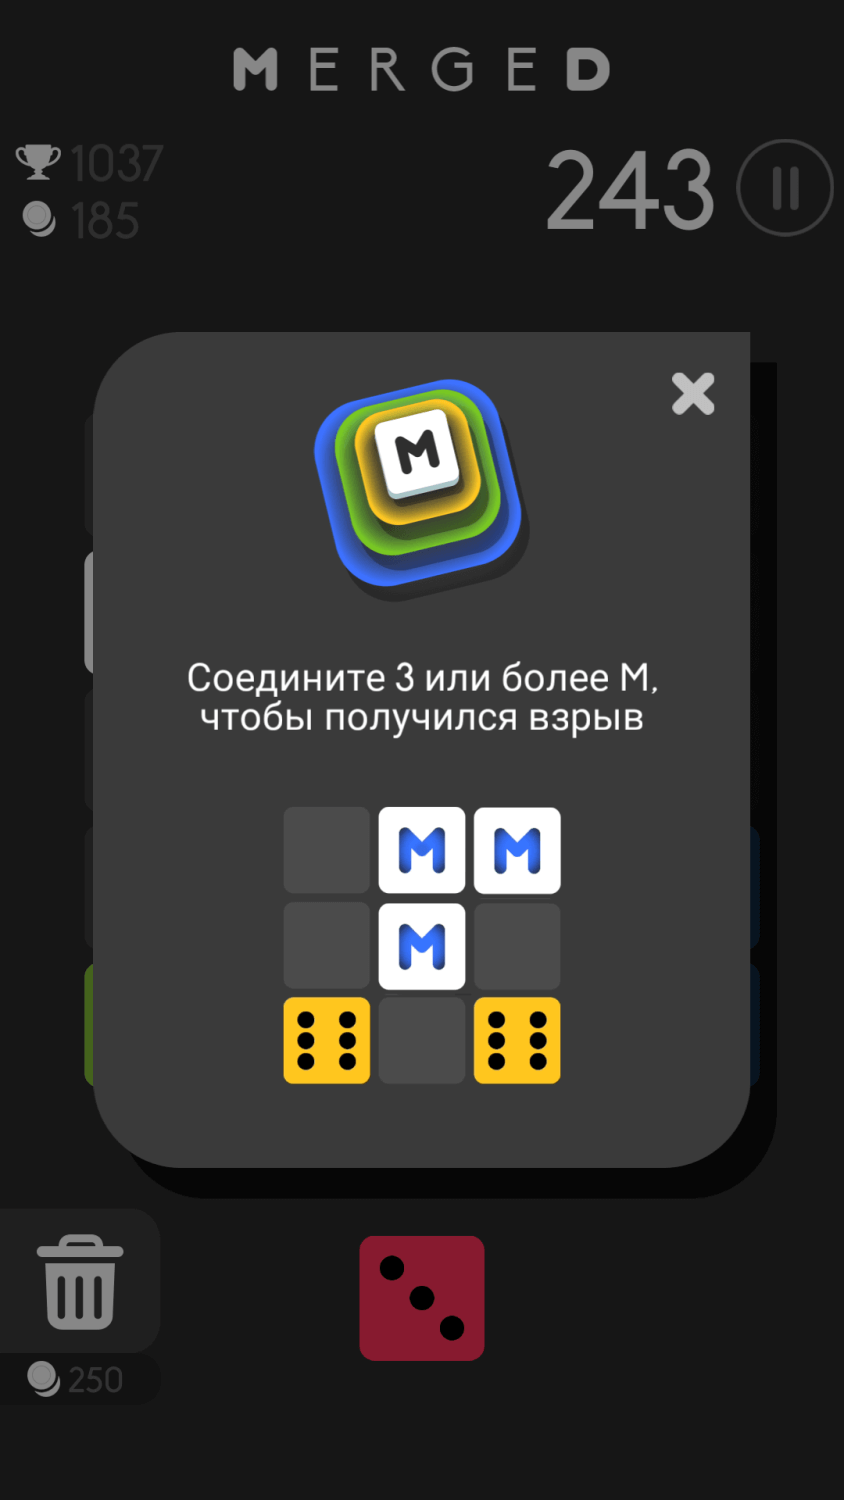 Screenshot_2016-02-19-14-18-36_com.gramgames.merged